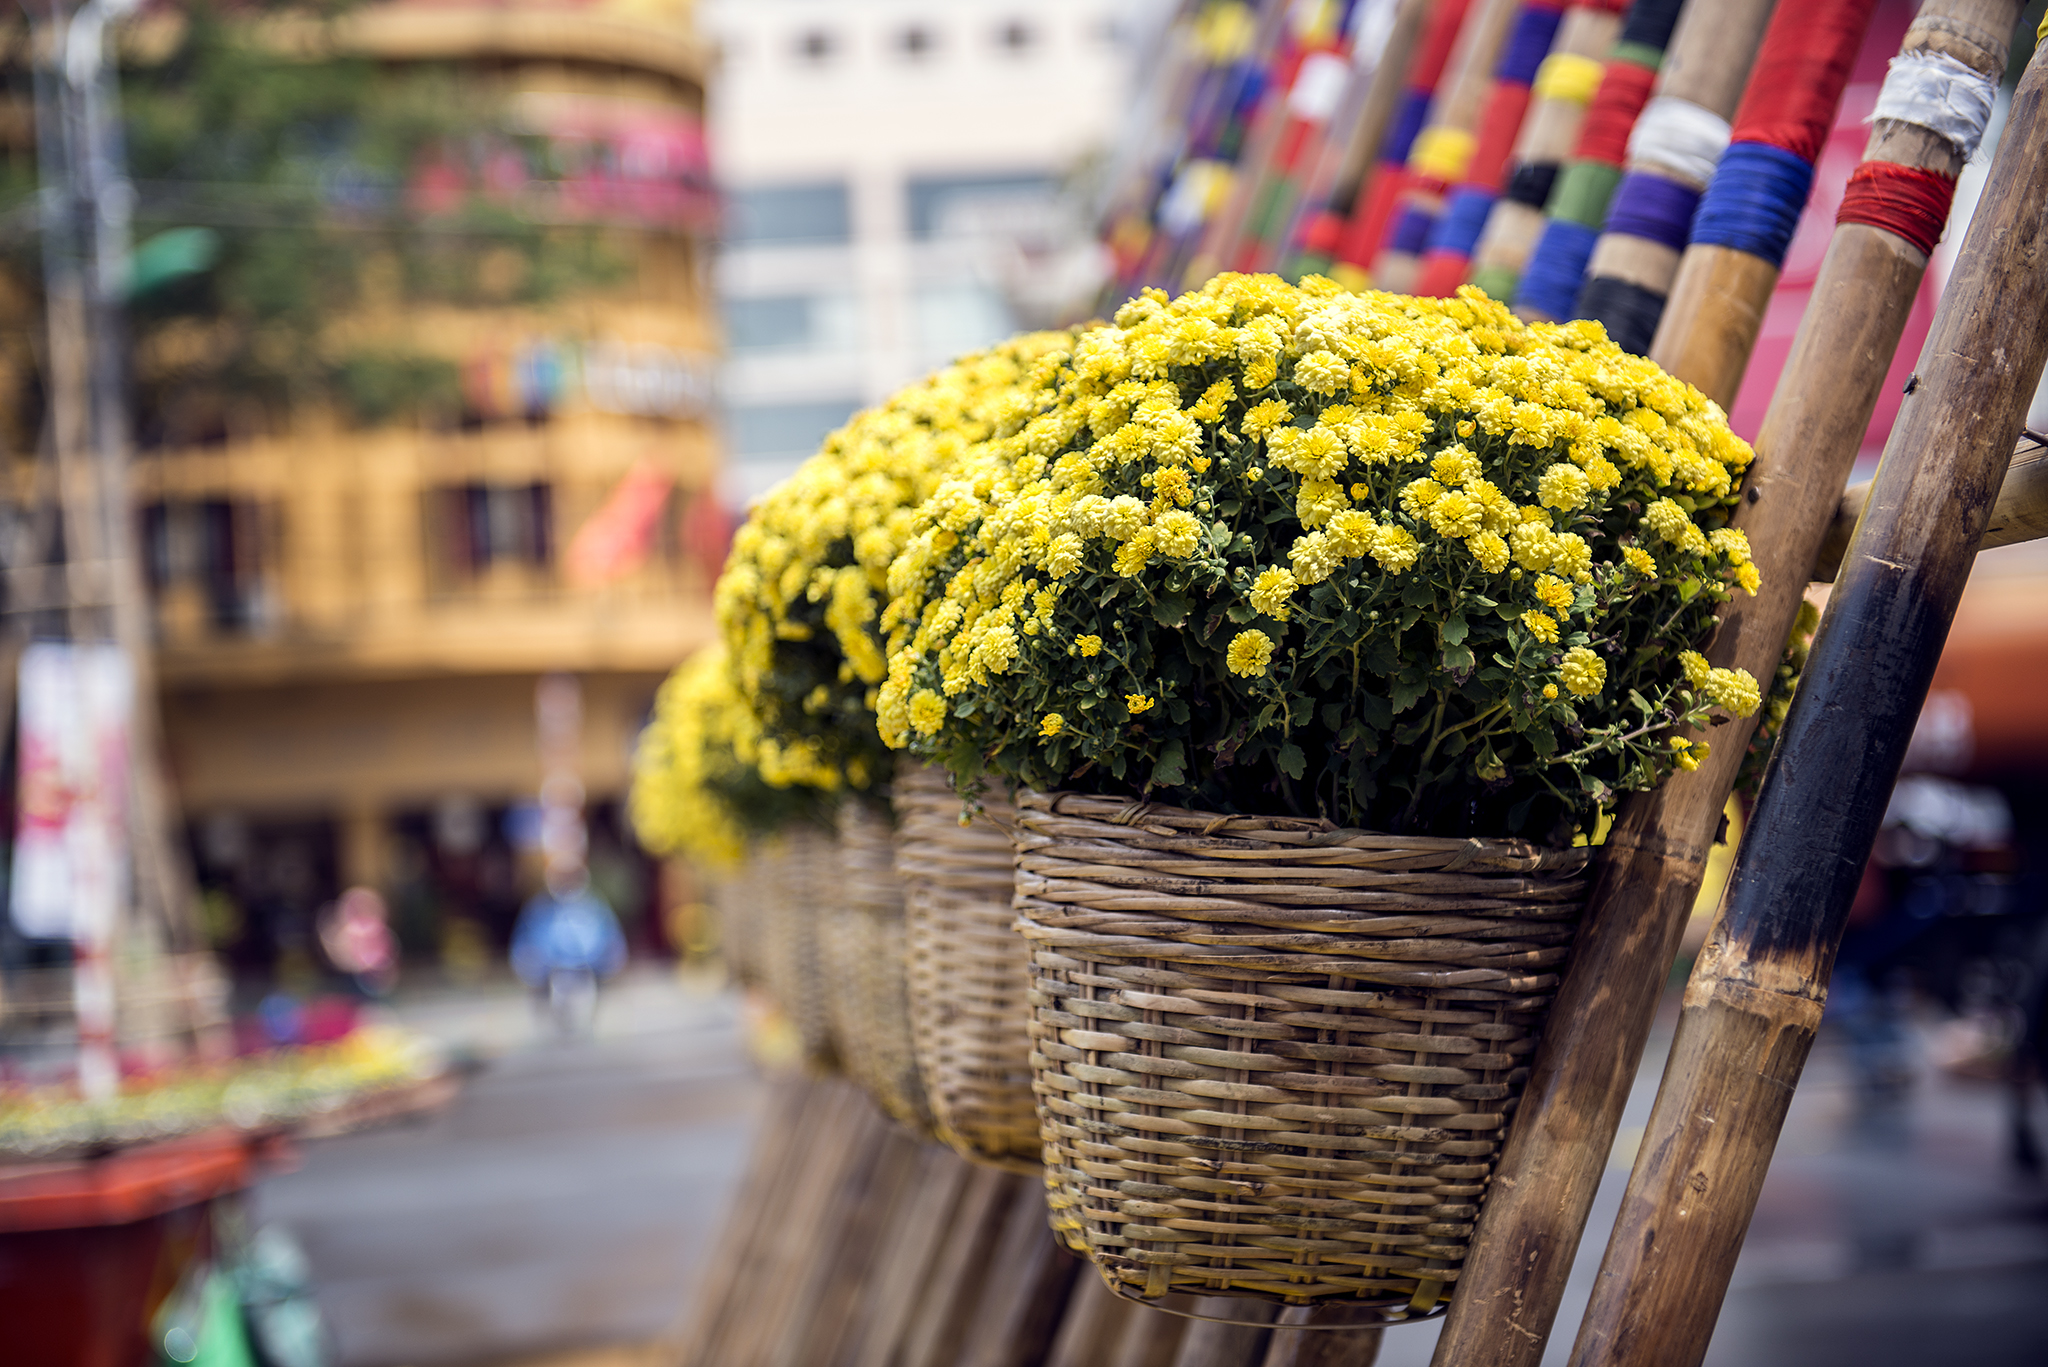 Weaved baskets of yellow flowers attached to tilted bamboo sticks